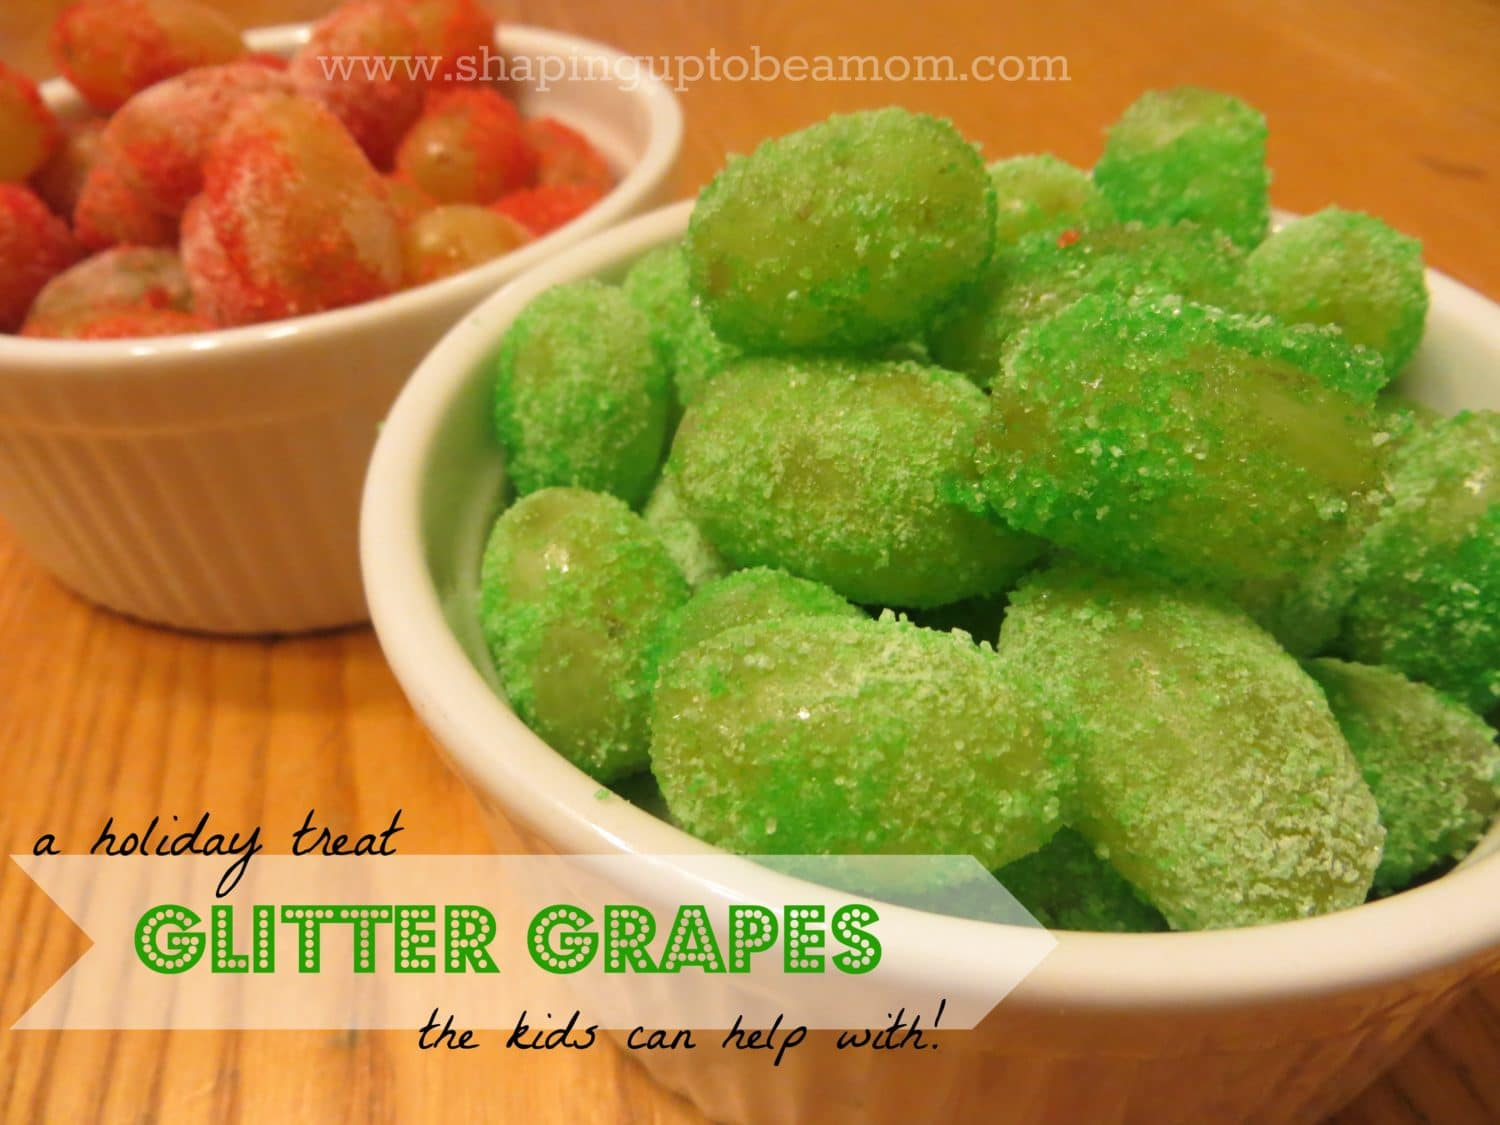 Glitter Grapes, a fun holiday treat to make with your kids! shapinguptobeamom.com